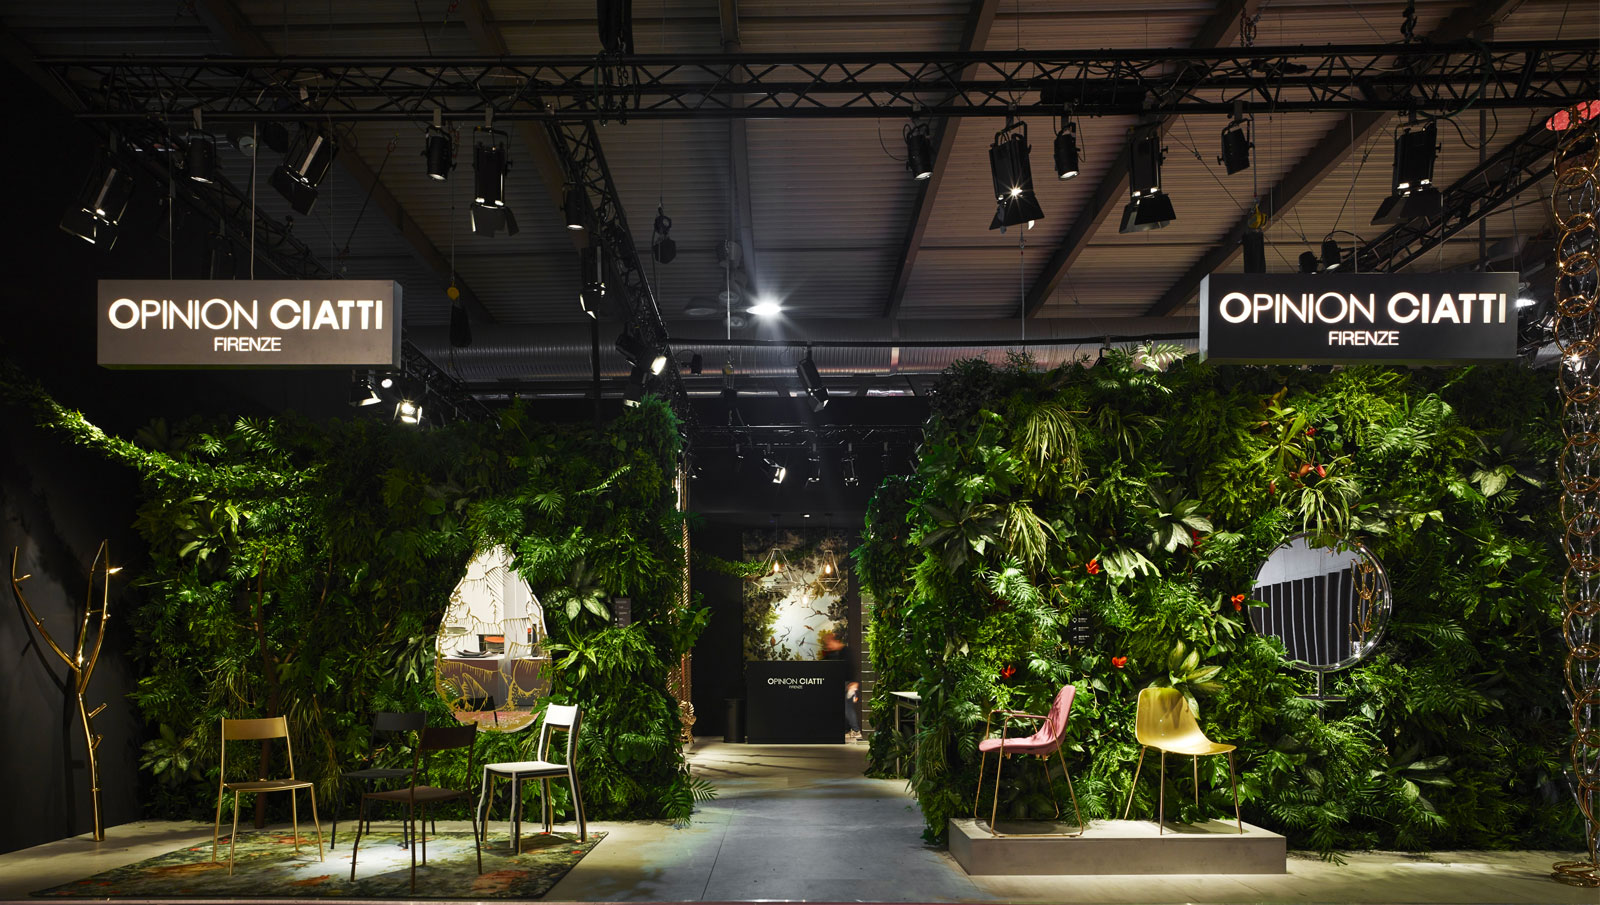 SalonedelMobile2019-1_1.jpg